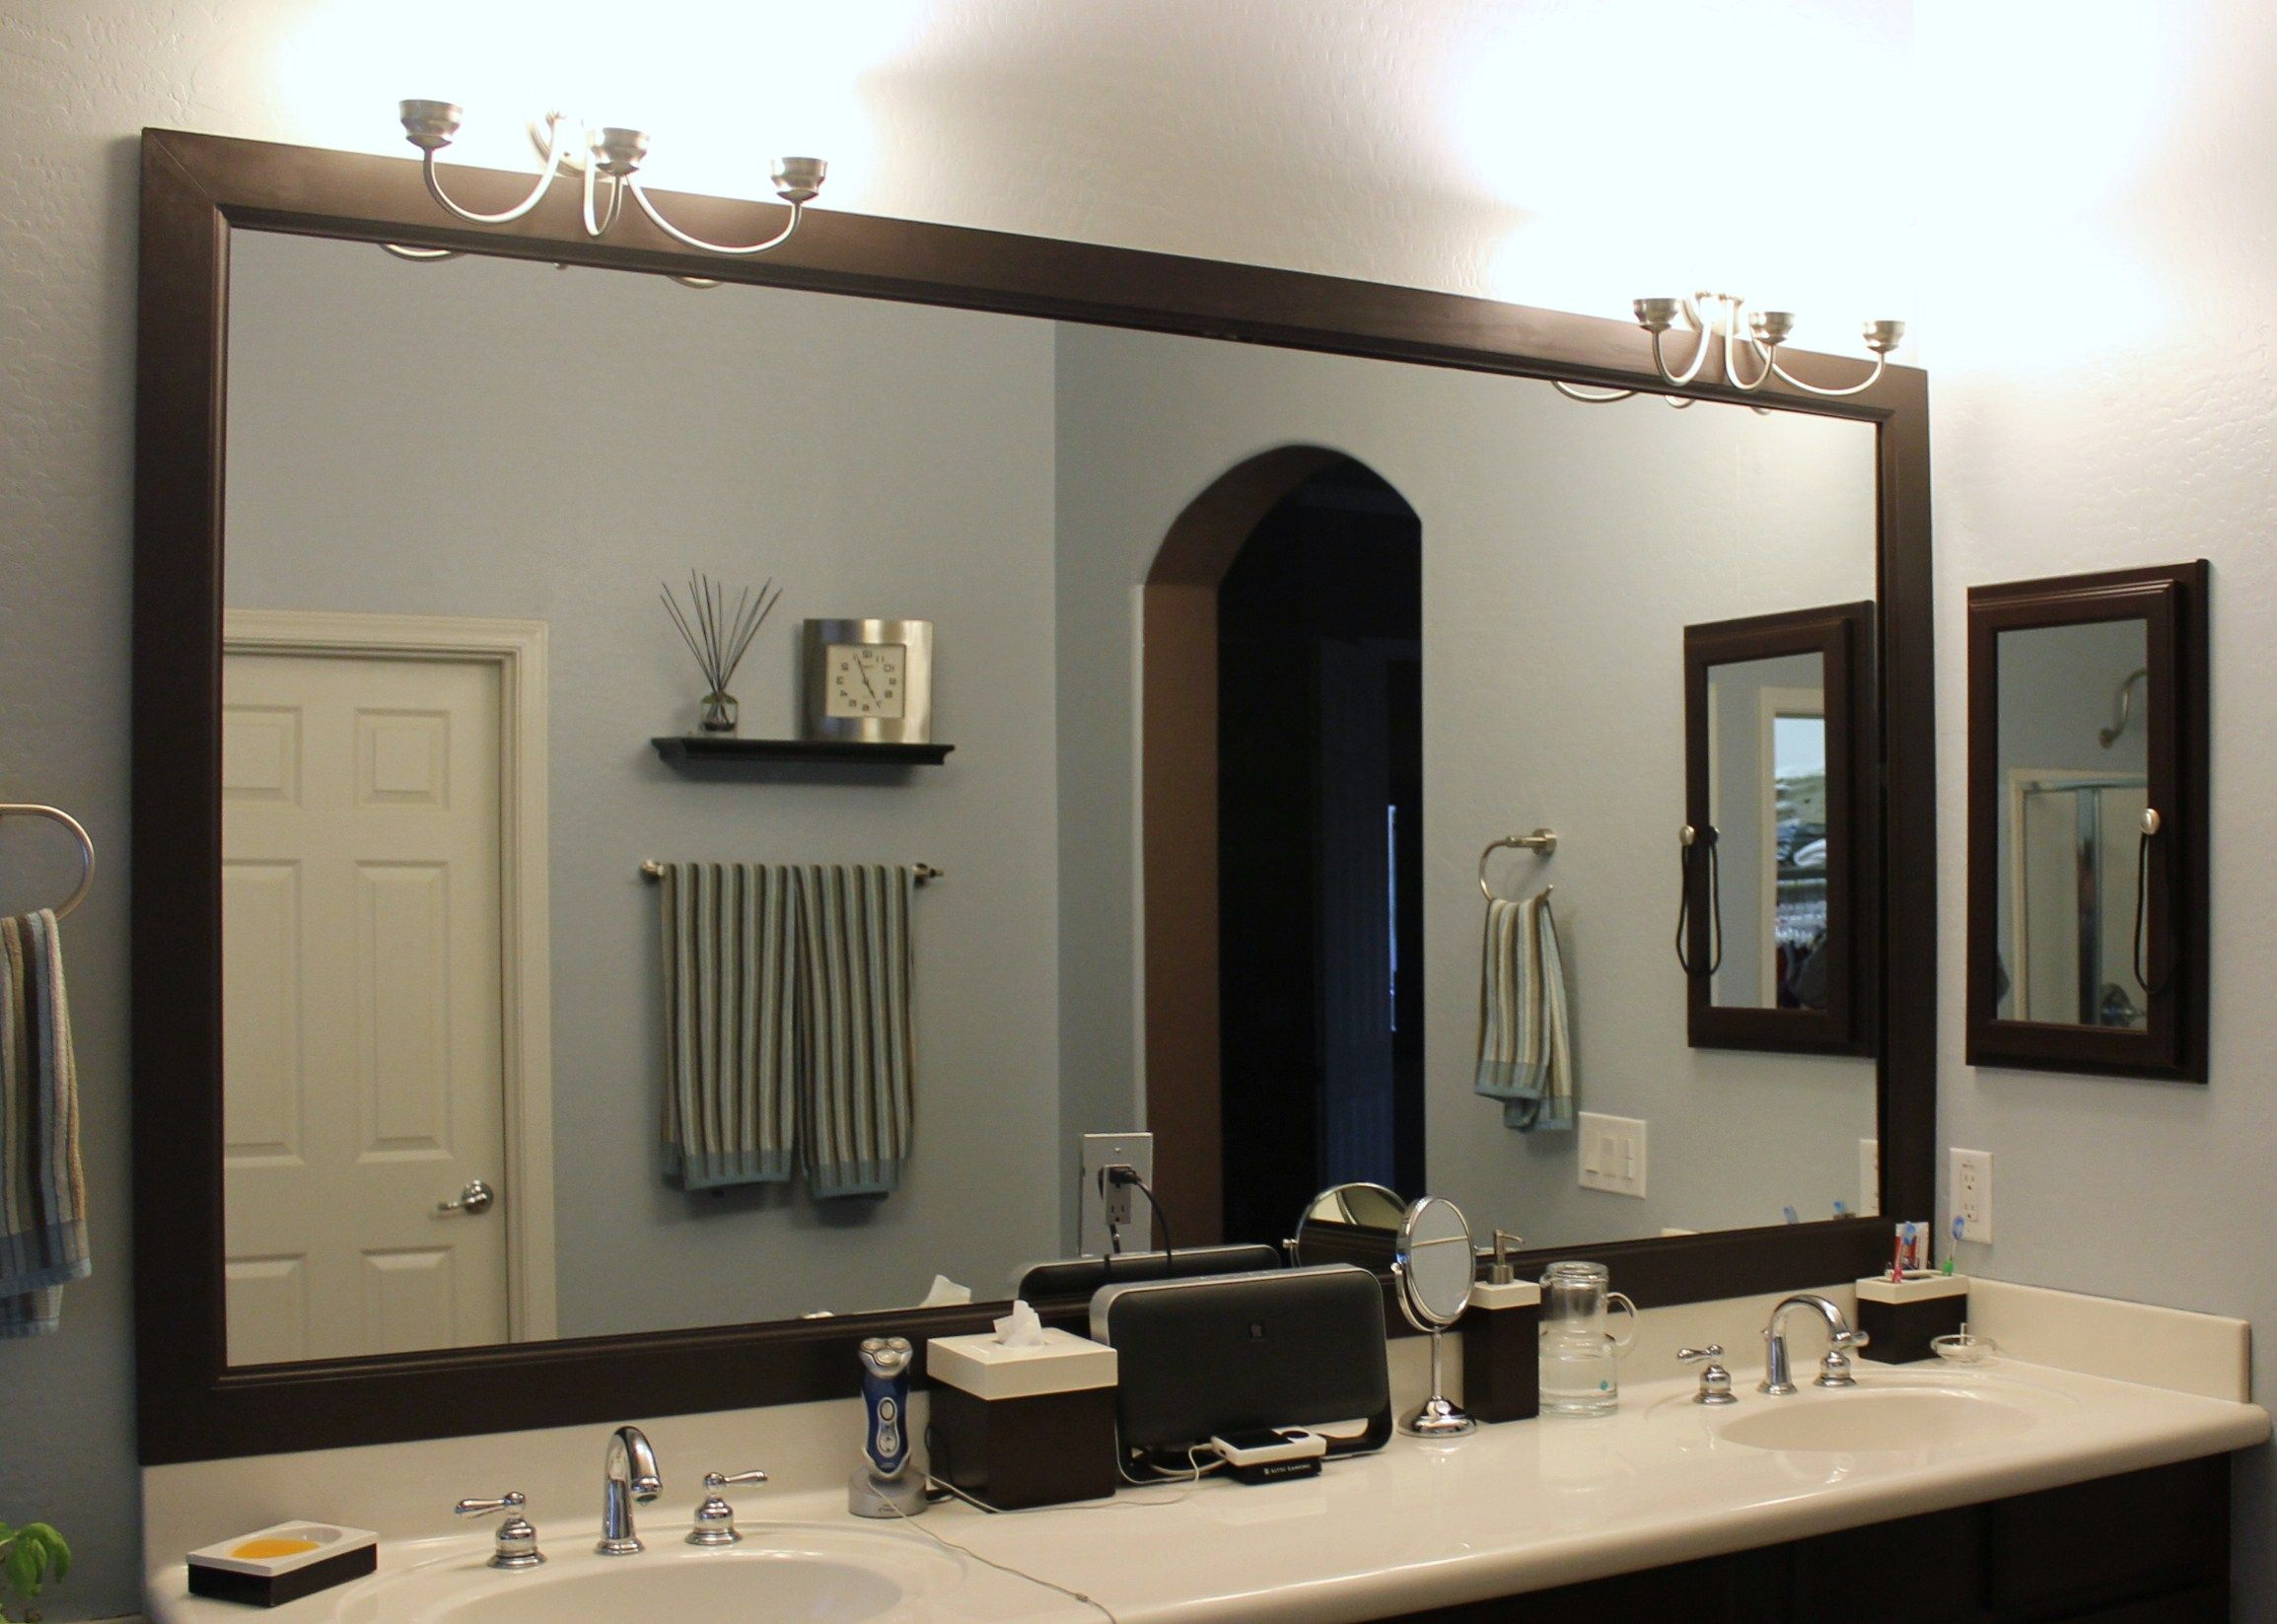 diy frame large bathroom mirror diy bathroom mirror frame bathroom ideas 23093